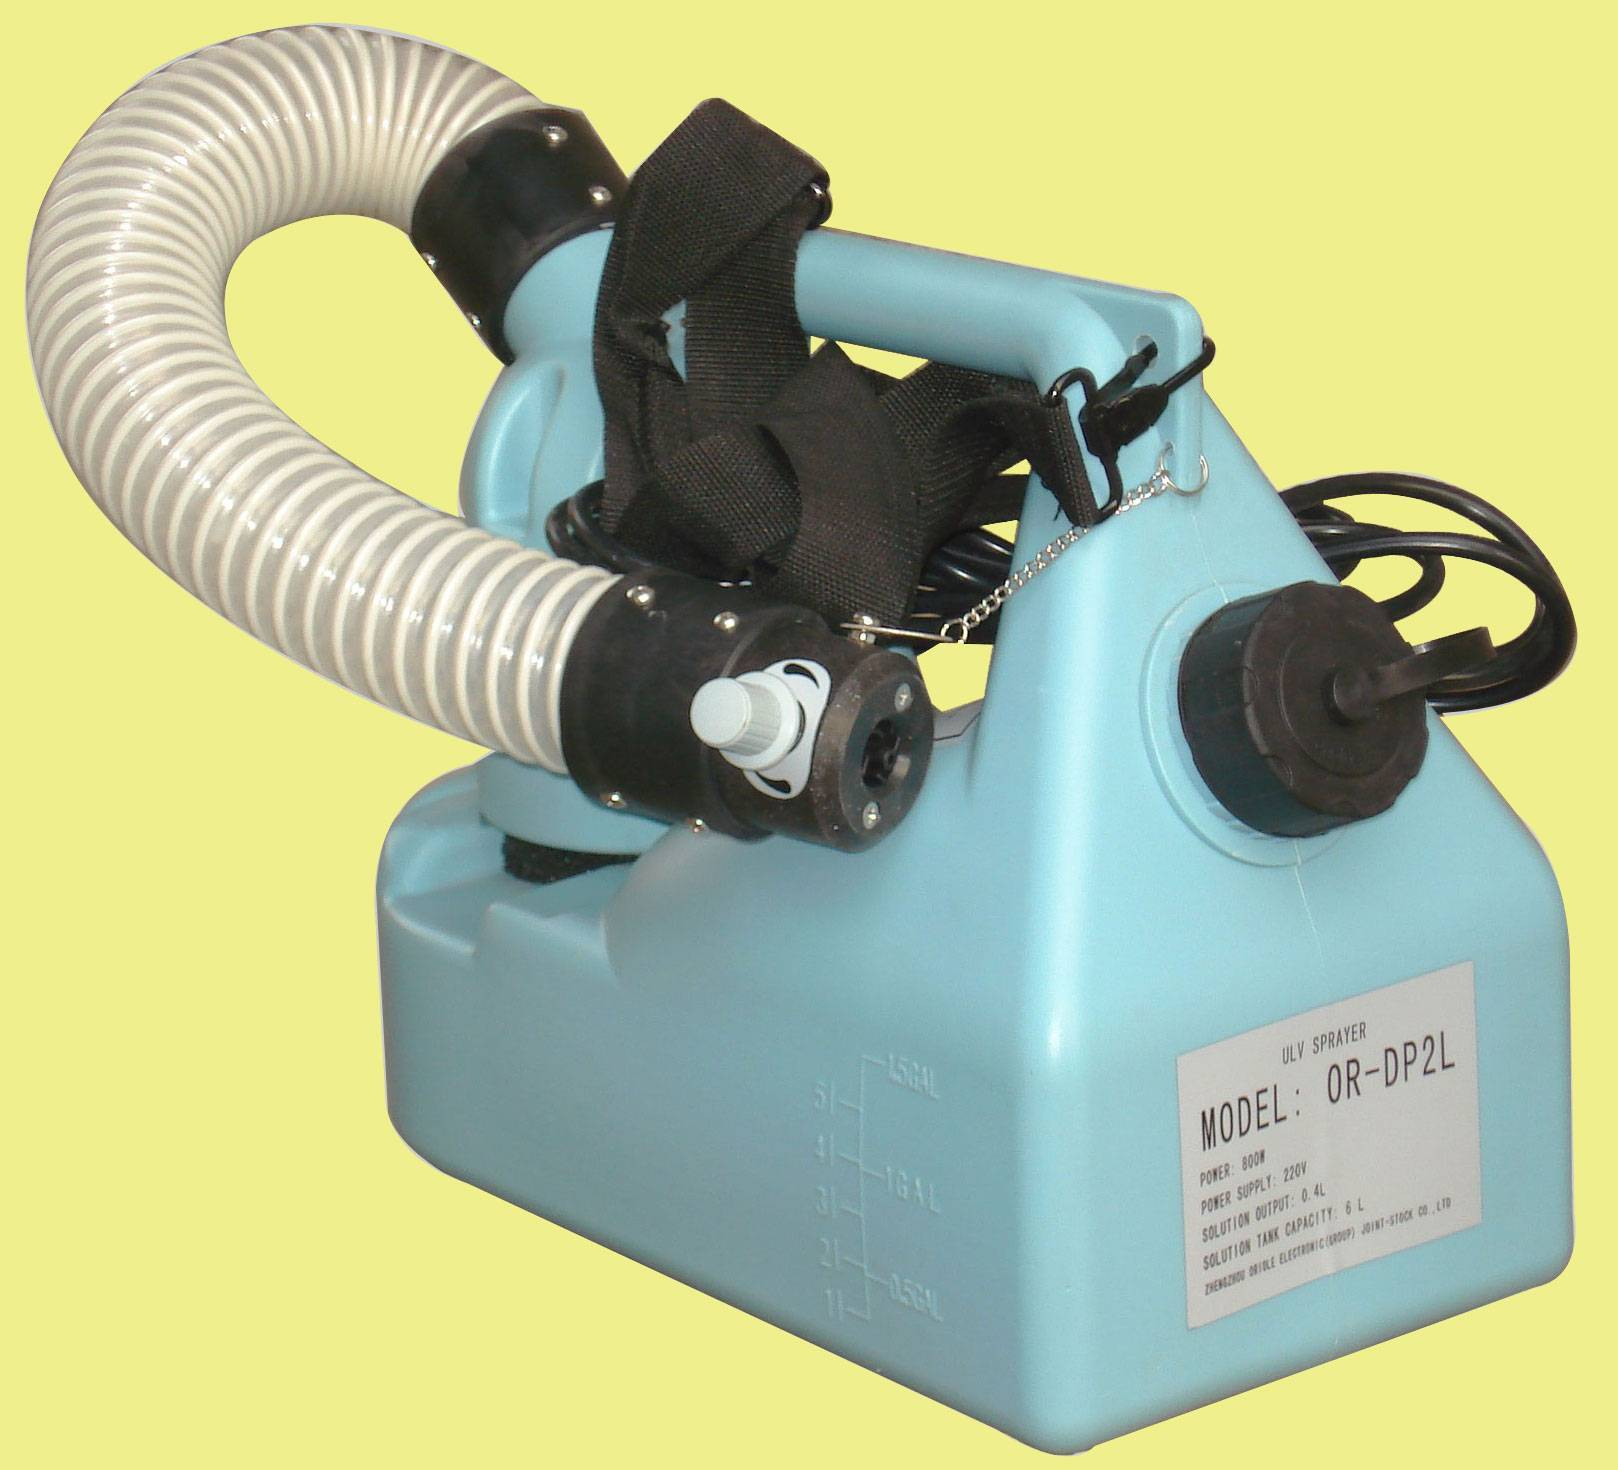 ULV Fogger OR-DP2L Electric ULV Cold Fogger insecticide sprayer Microbe Virus Vermin